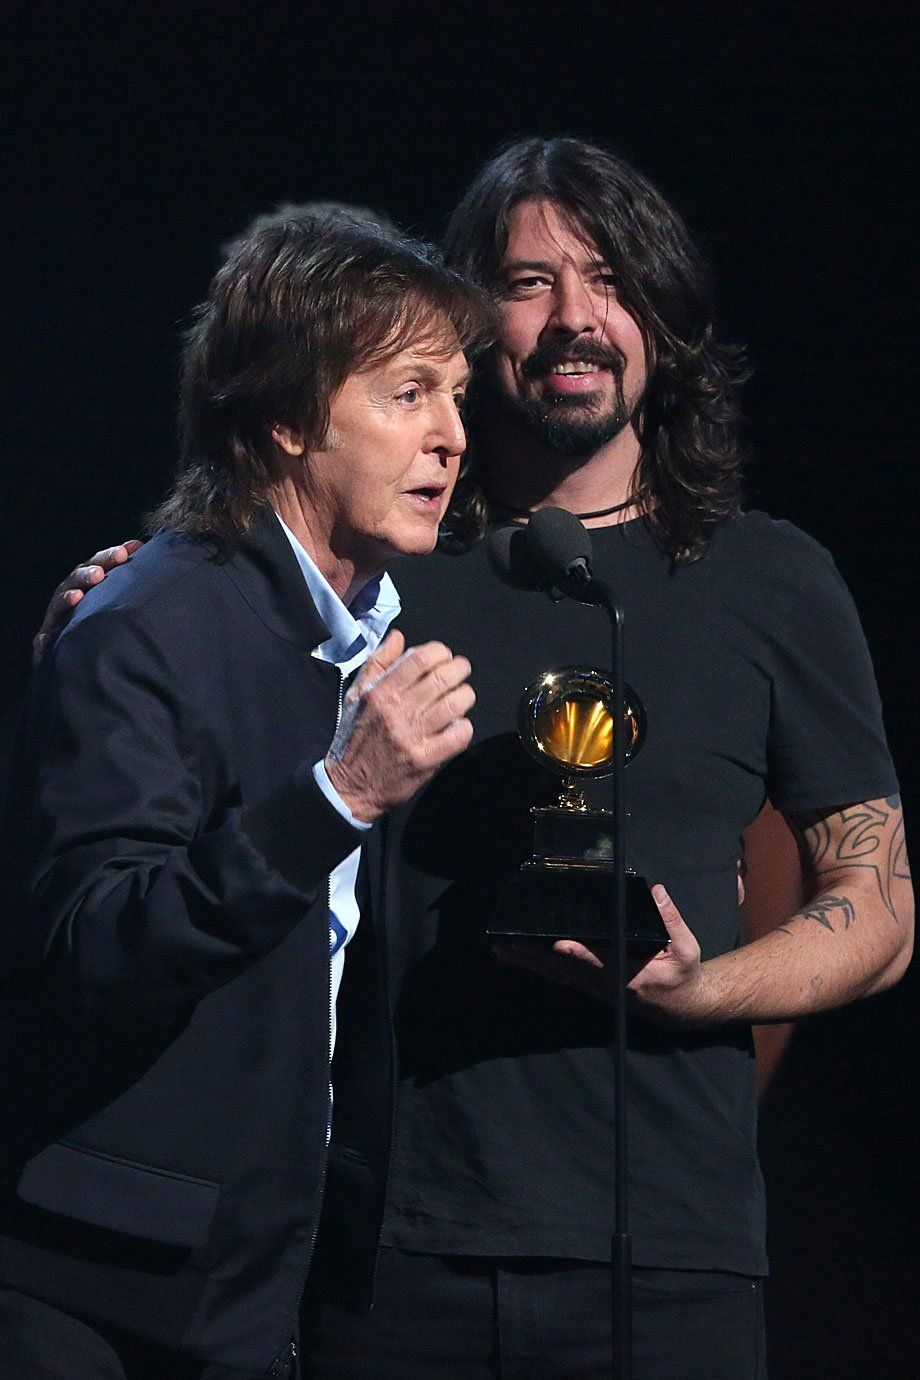 Paul-mccartney-dave-grohl-A